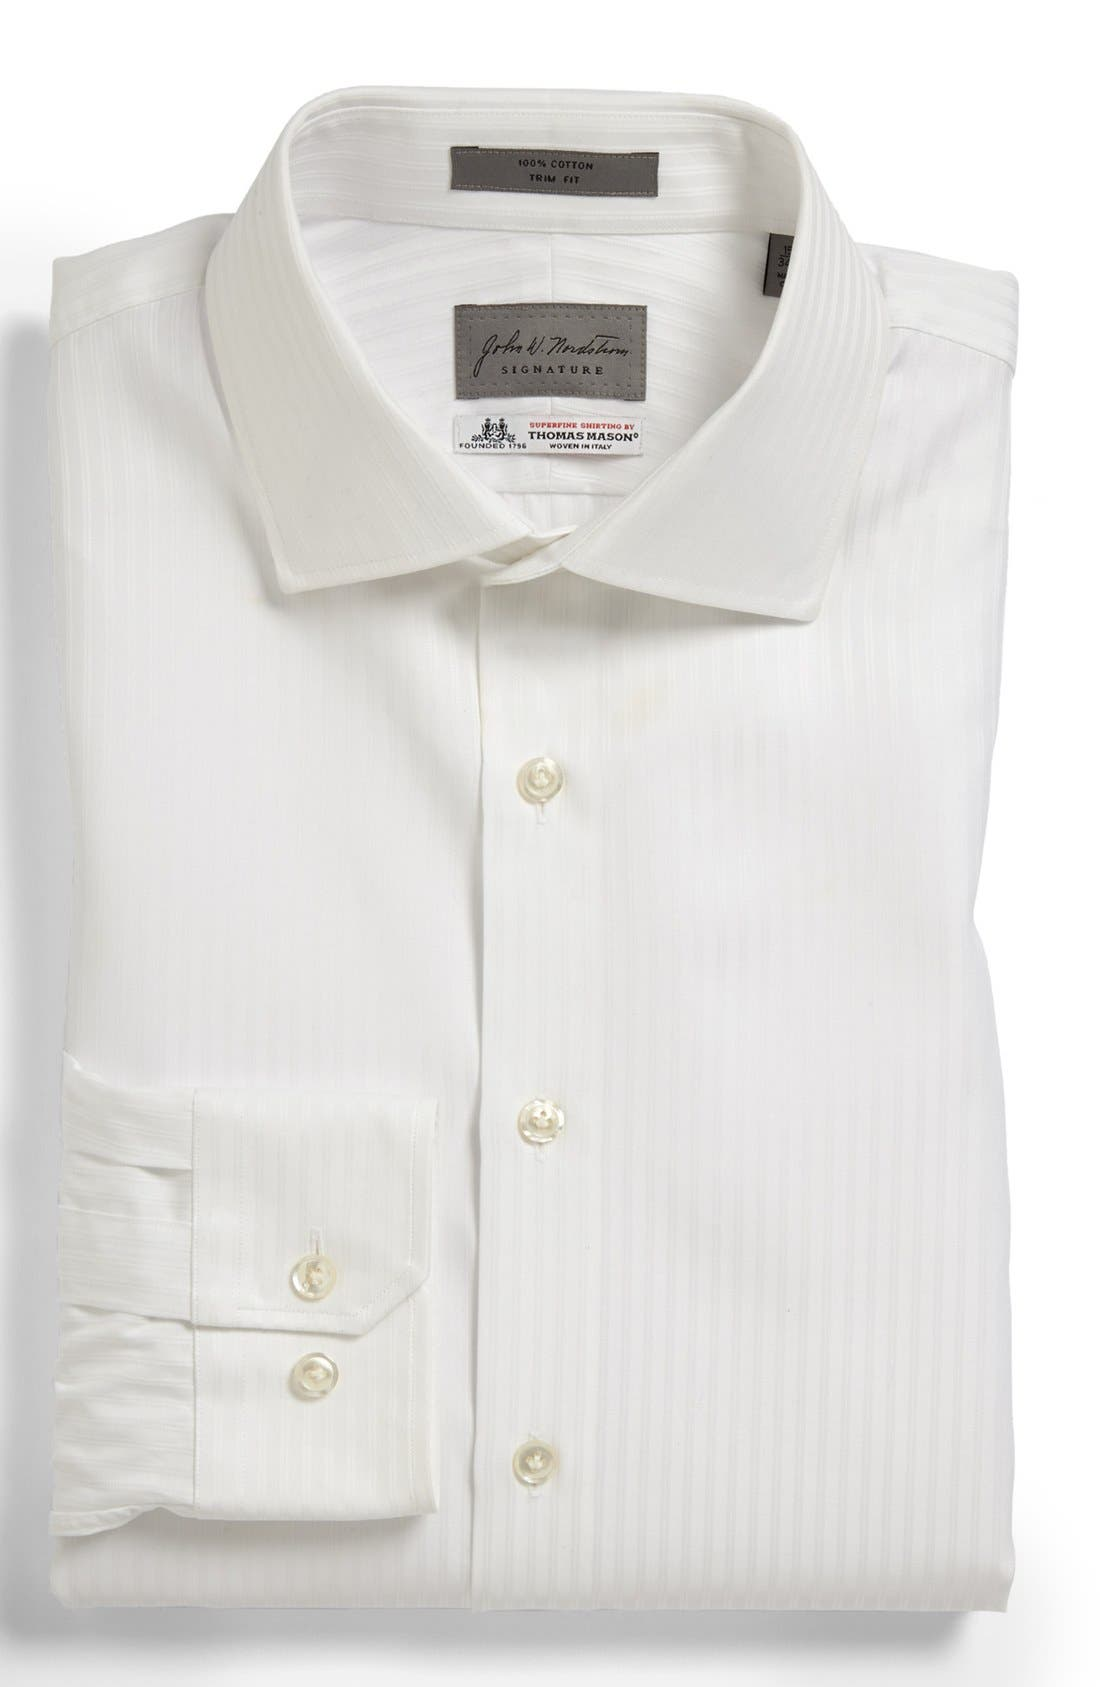 Main Image - John W. Nordstrom® Signature Trim Fit Stripe Dress Shirt